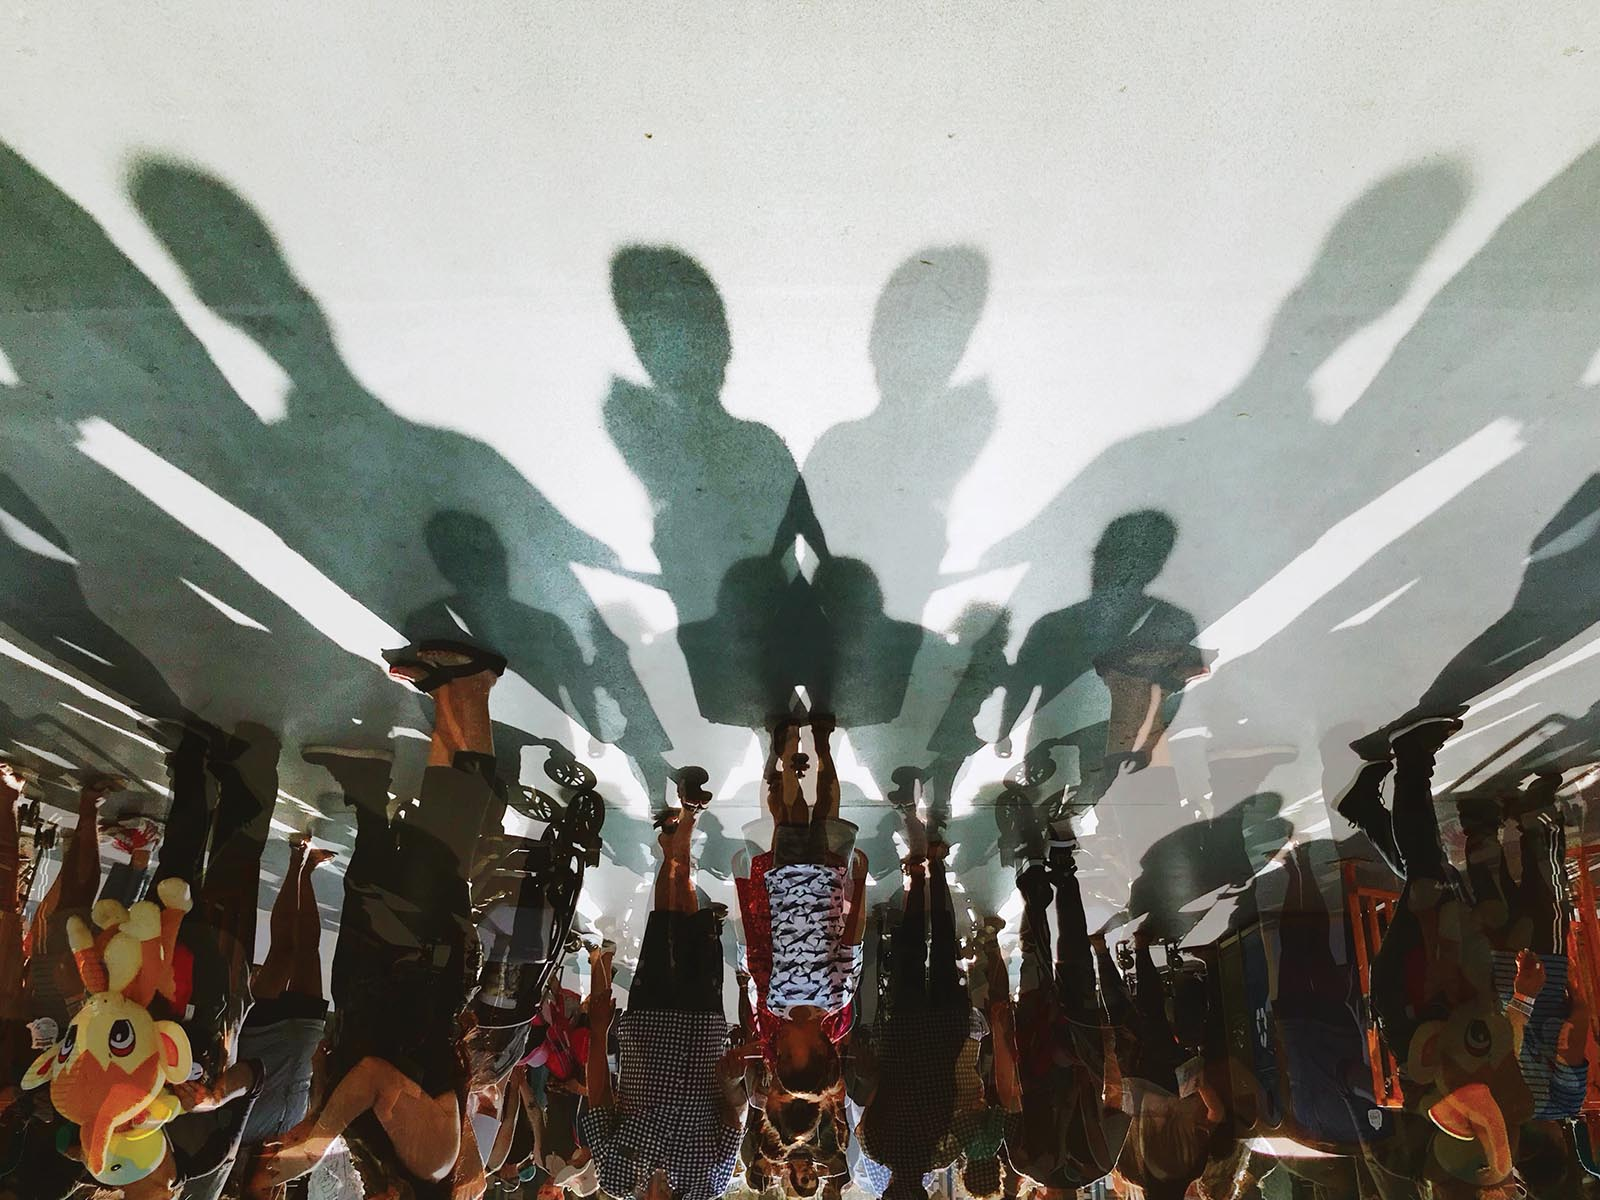 Creative photography of crowd and shadows